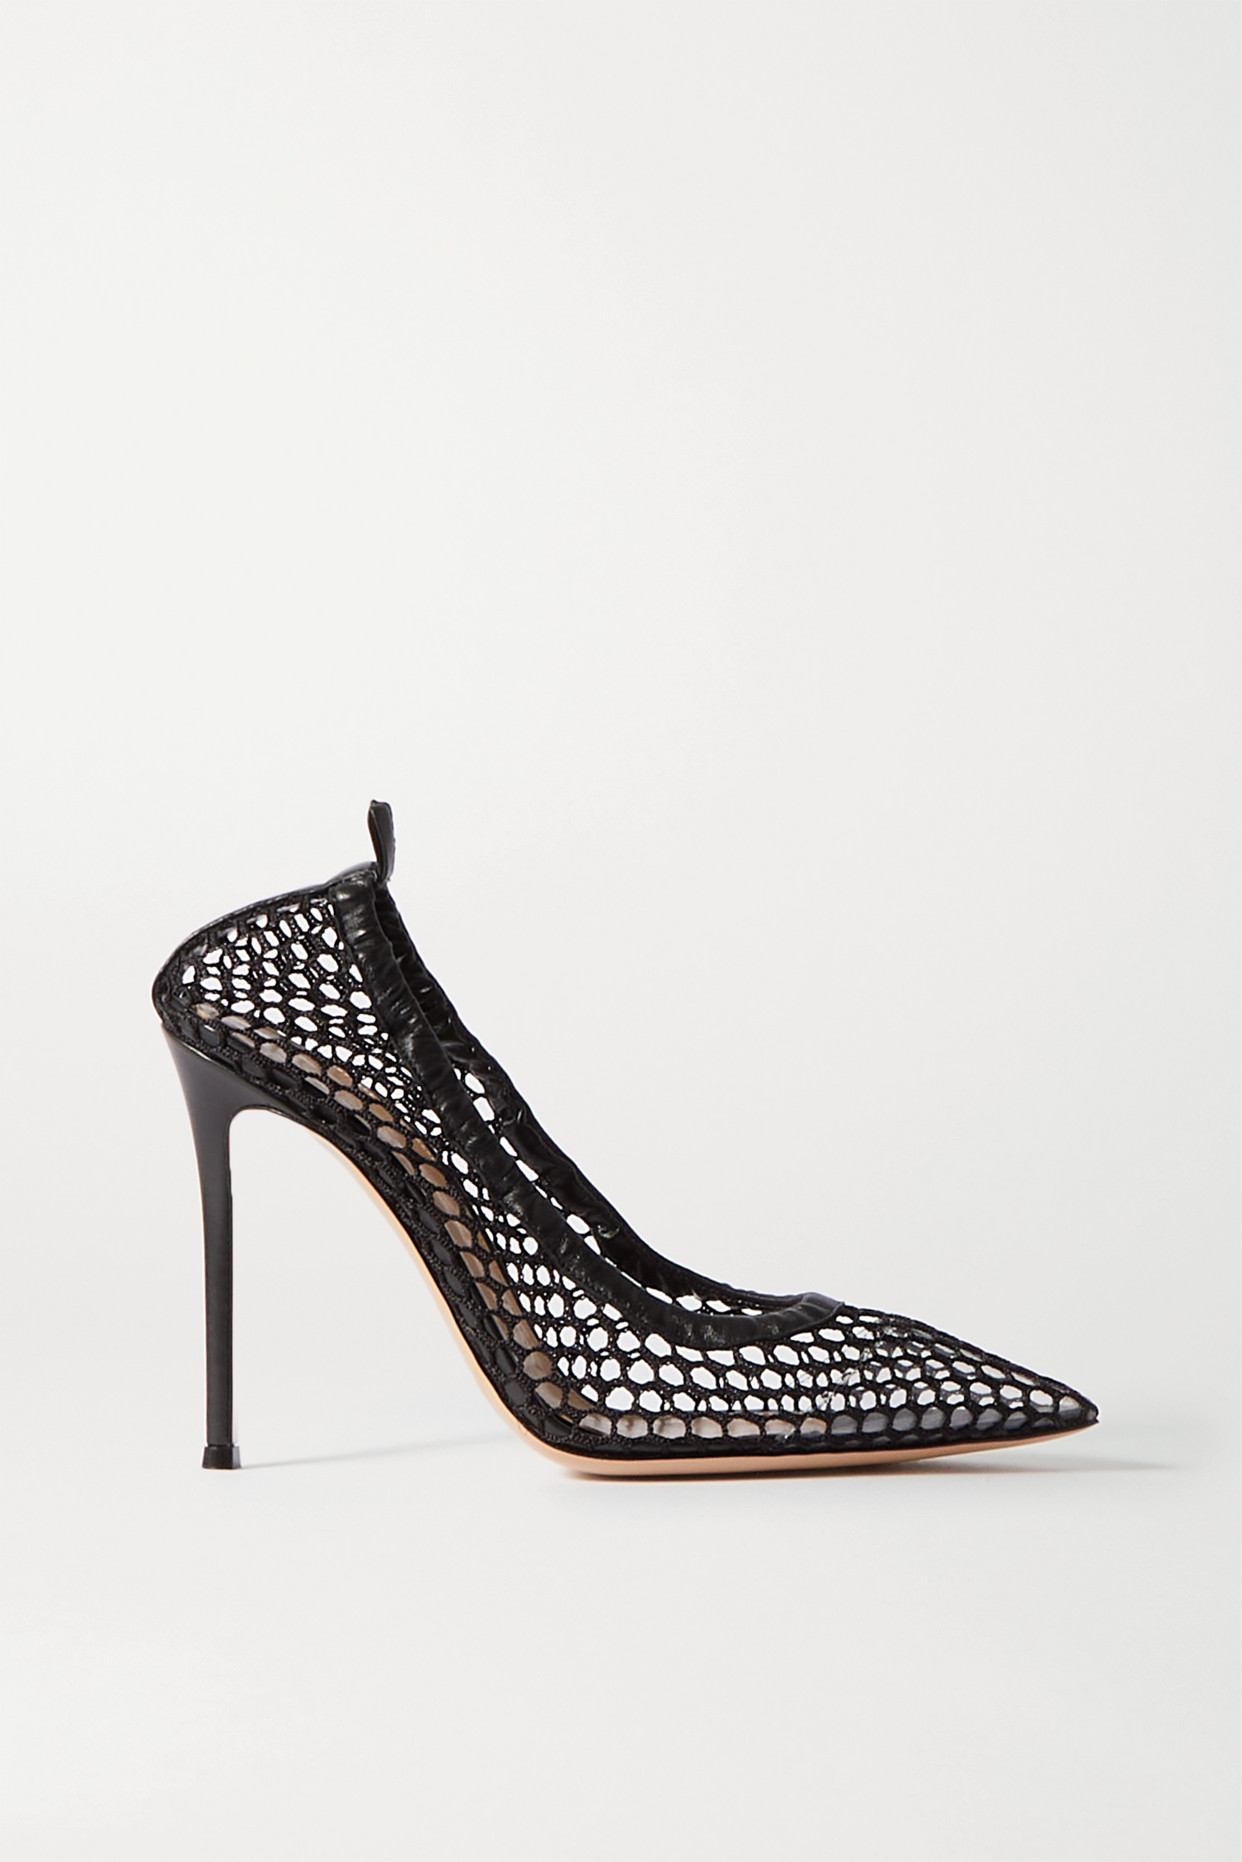 GIANVITO ROSSI - 105 Leather-trimmed Fishnet Pumps - Black - IT38